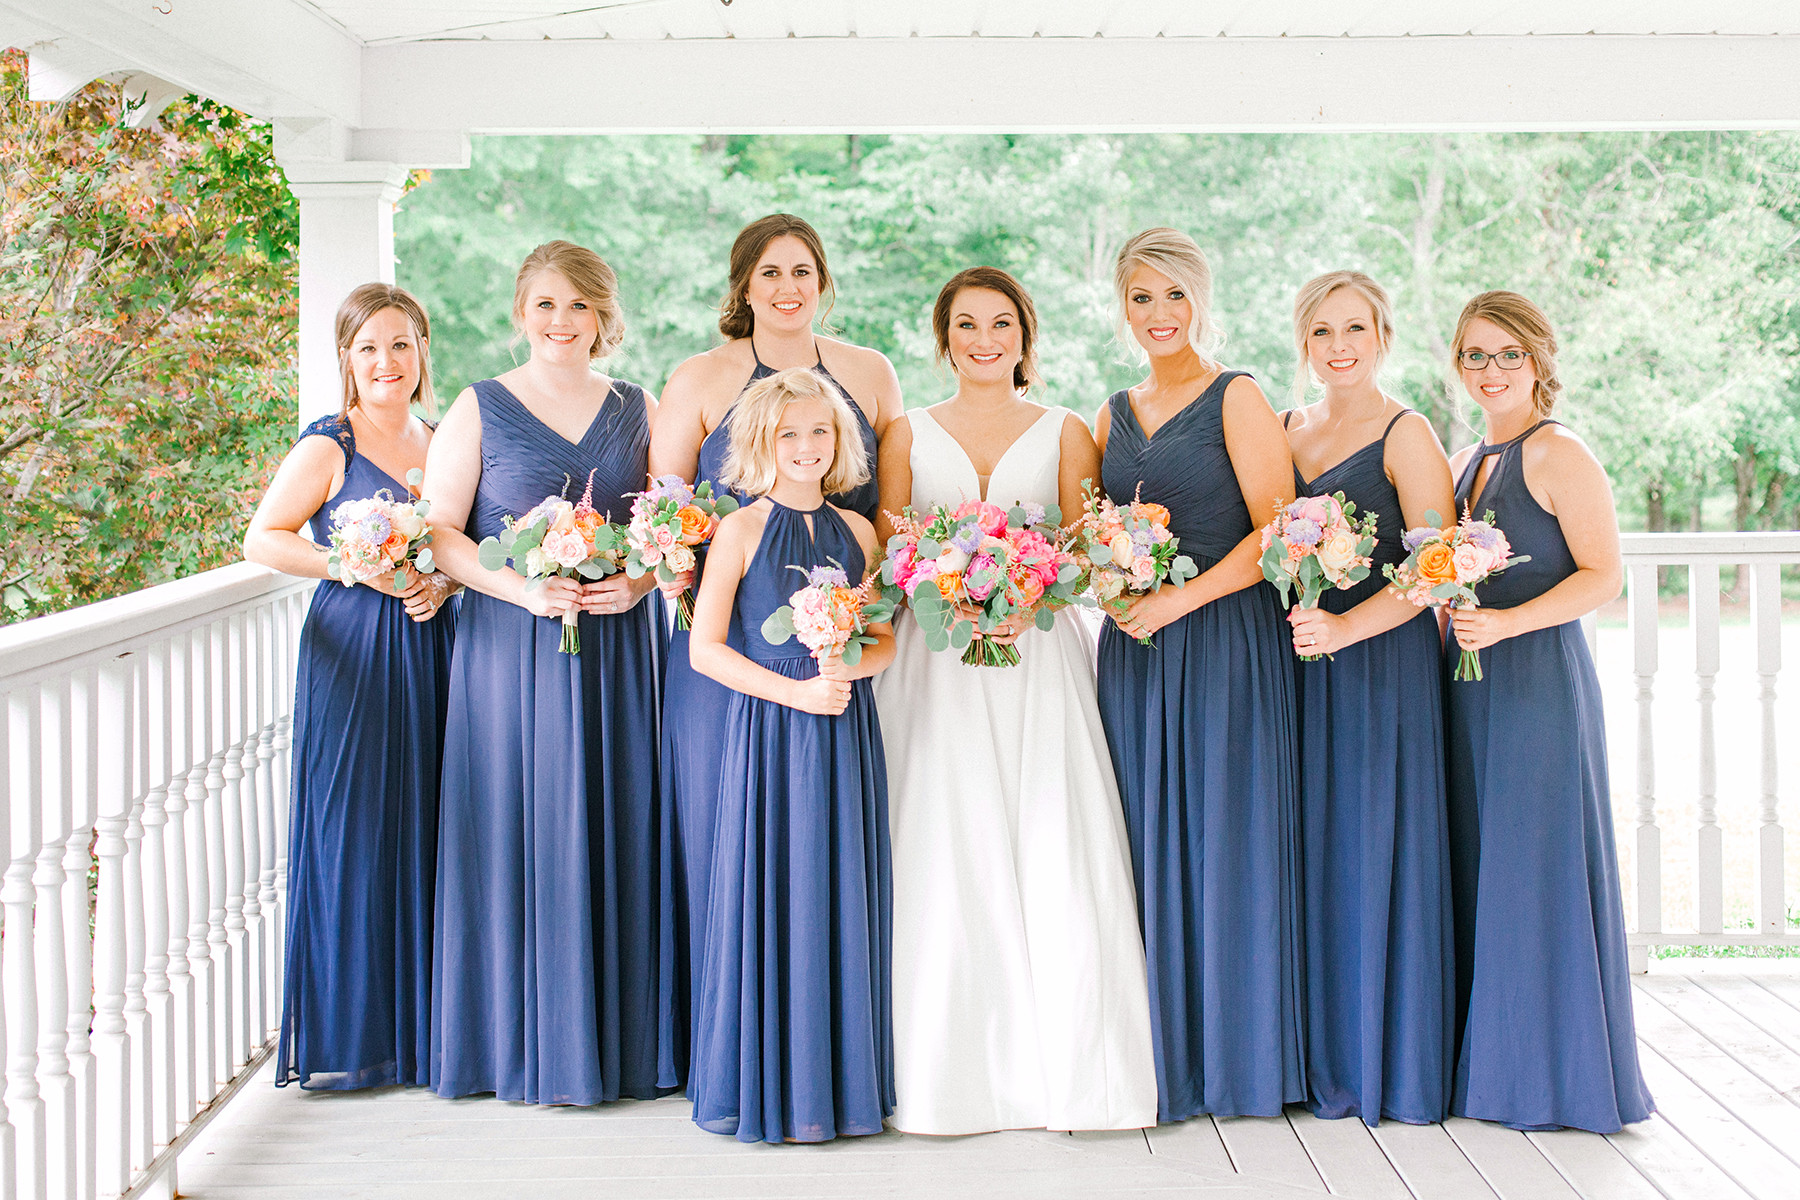 Hunter + Allison Wedding at The Sonnet House in Birmingham, AL